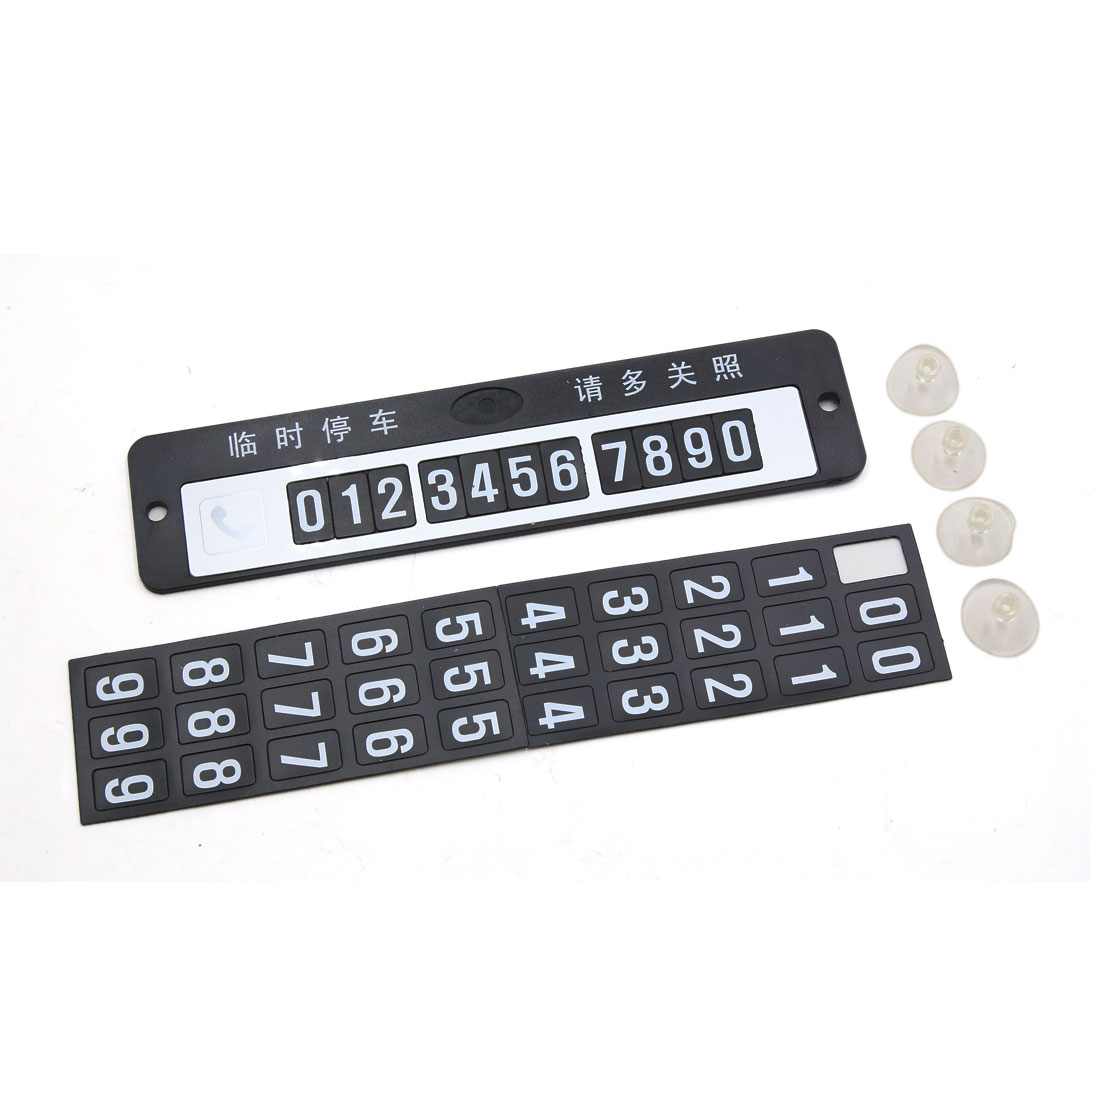 White Car Auto Temporary Parking Notification Phone Number Card 20 x 4.8 x 0.3cm